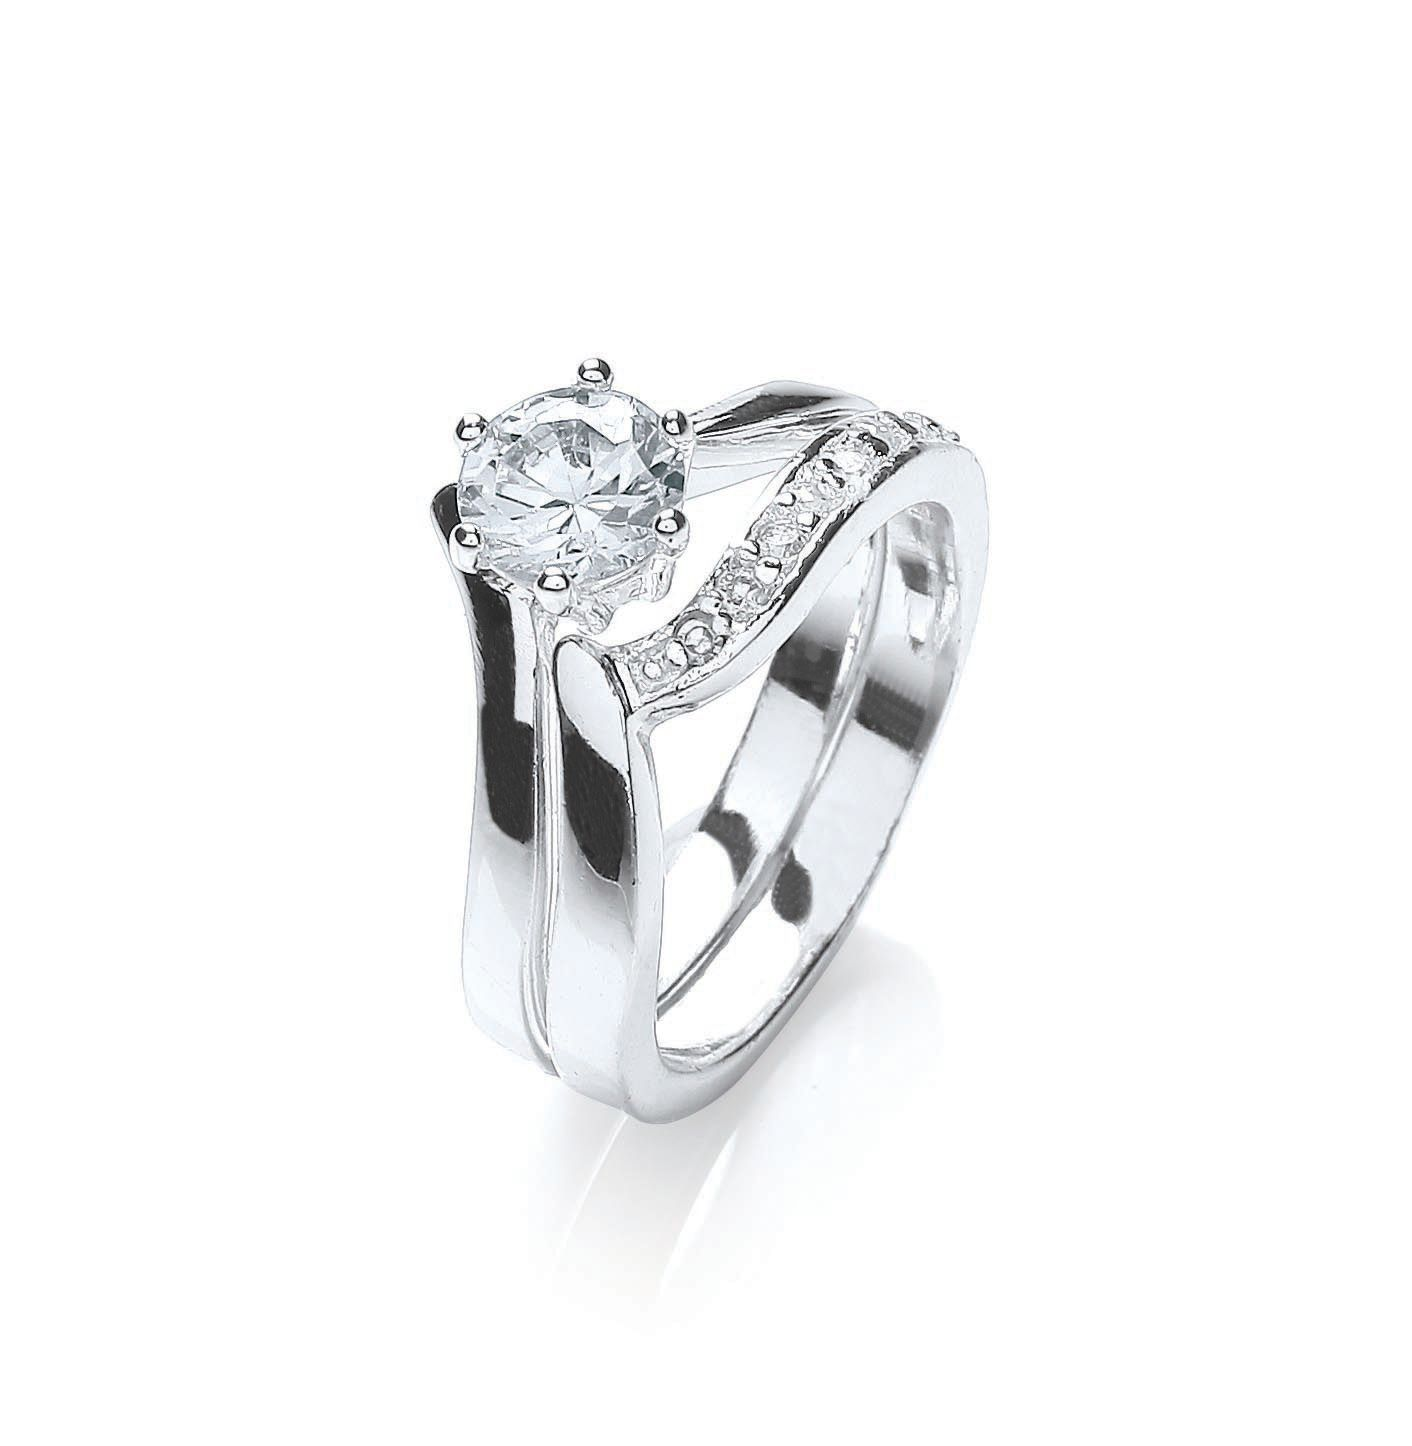 Rhodium plate cz duo ring set